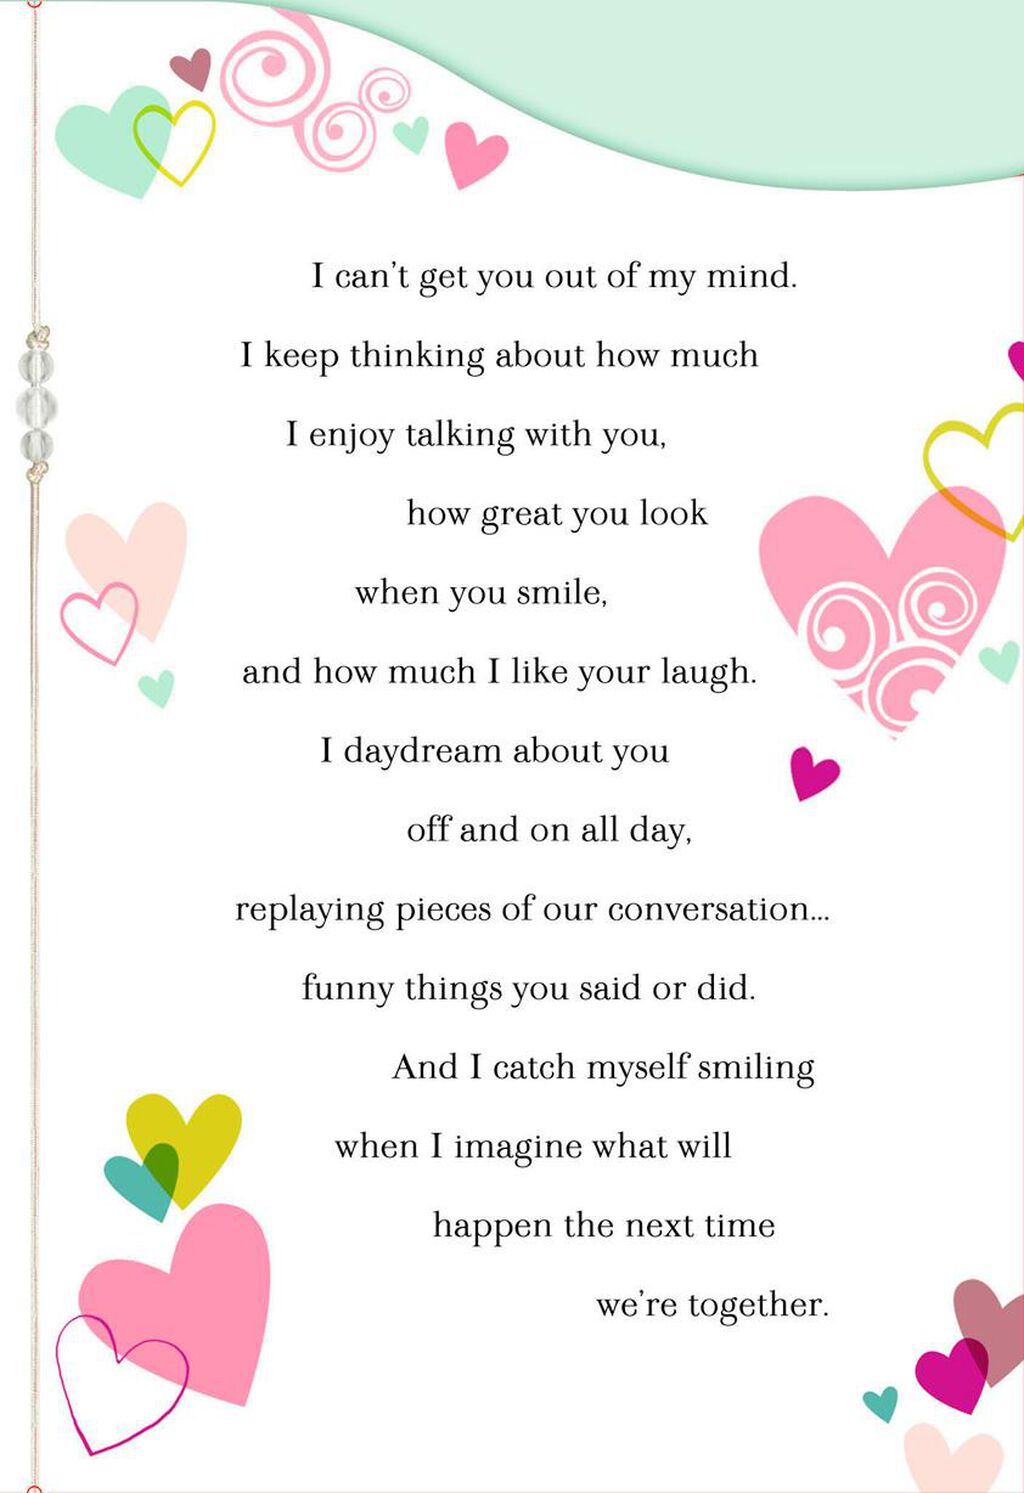 I Catch Myself Smiling New Relationship Love Card Greeting Cards